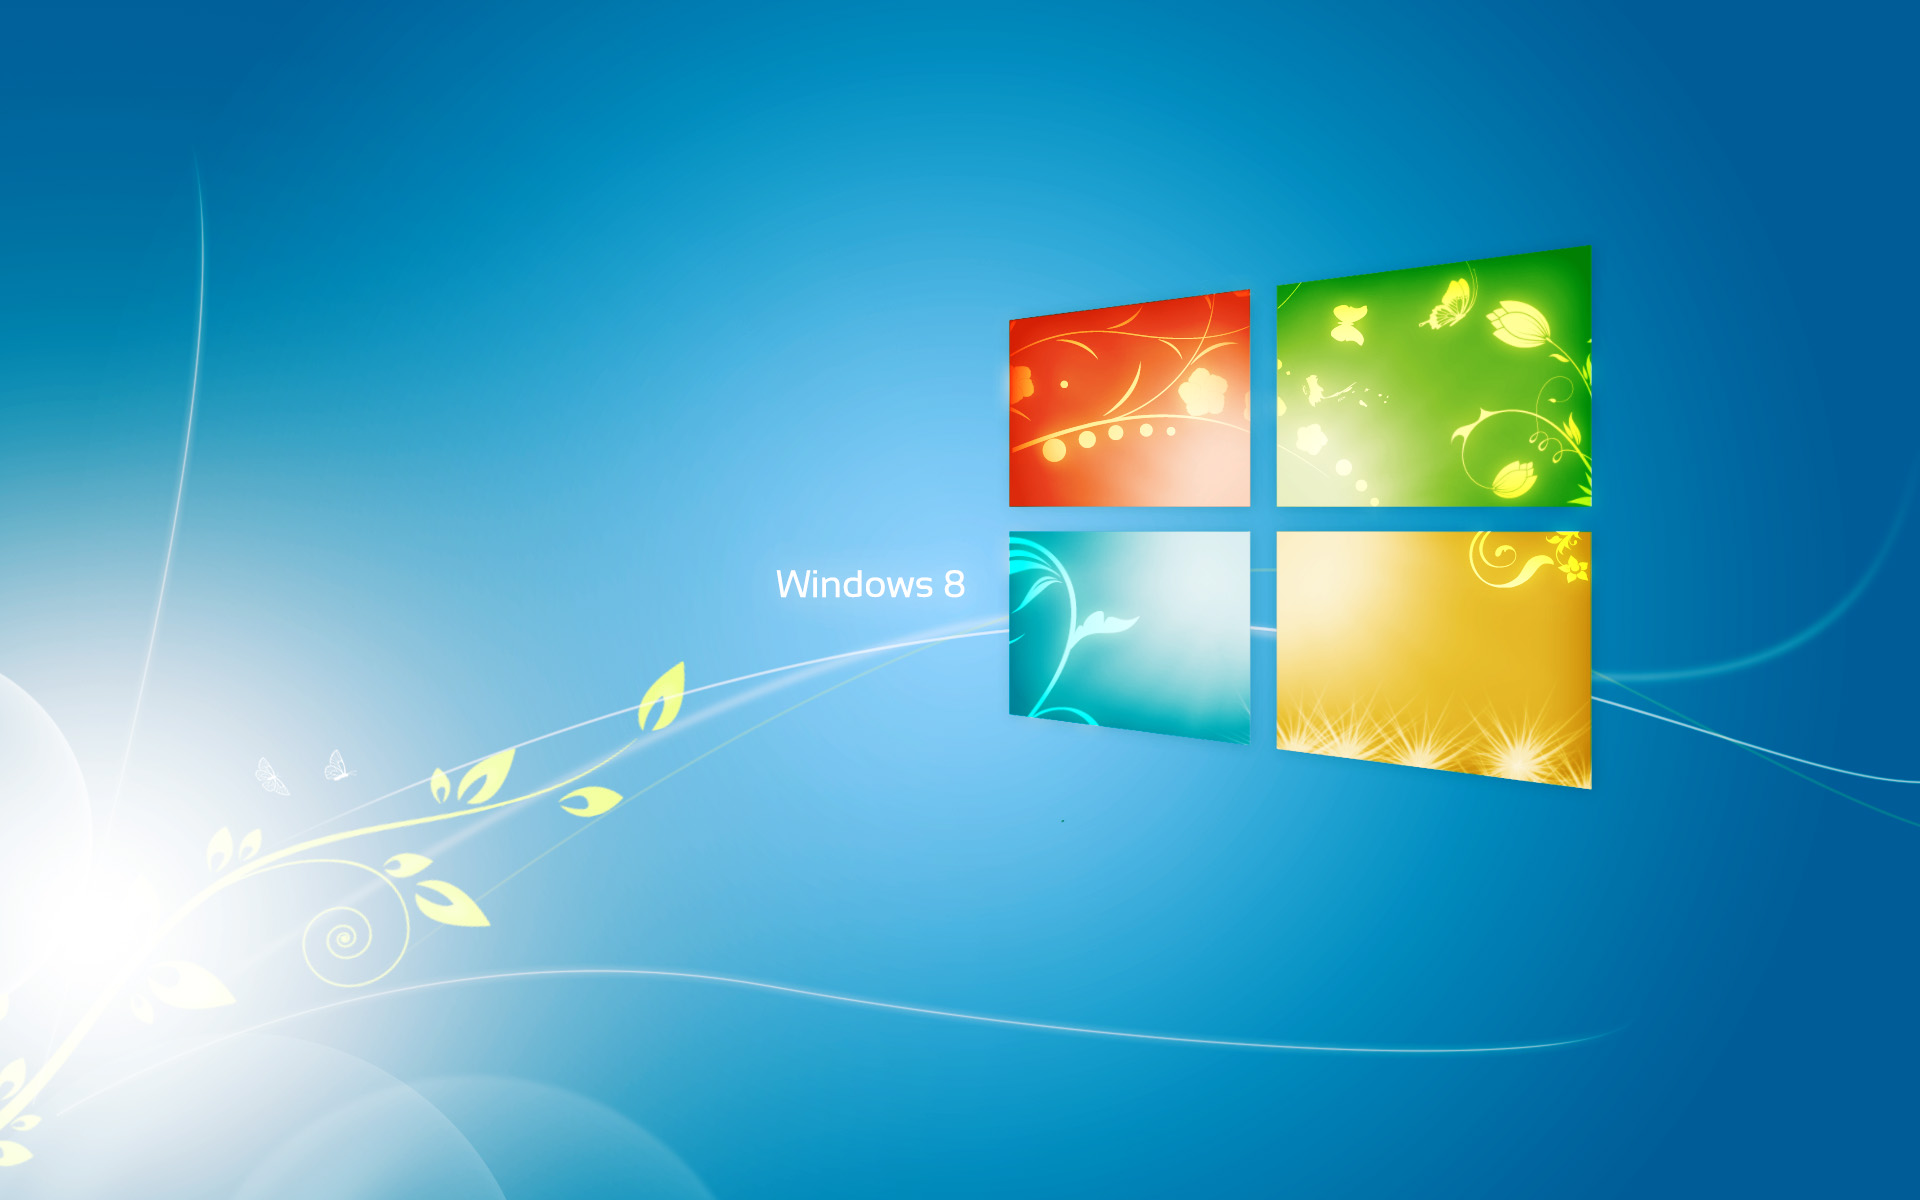 Hd wallpaper for windows 7 1080p